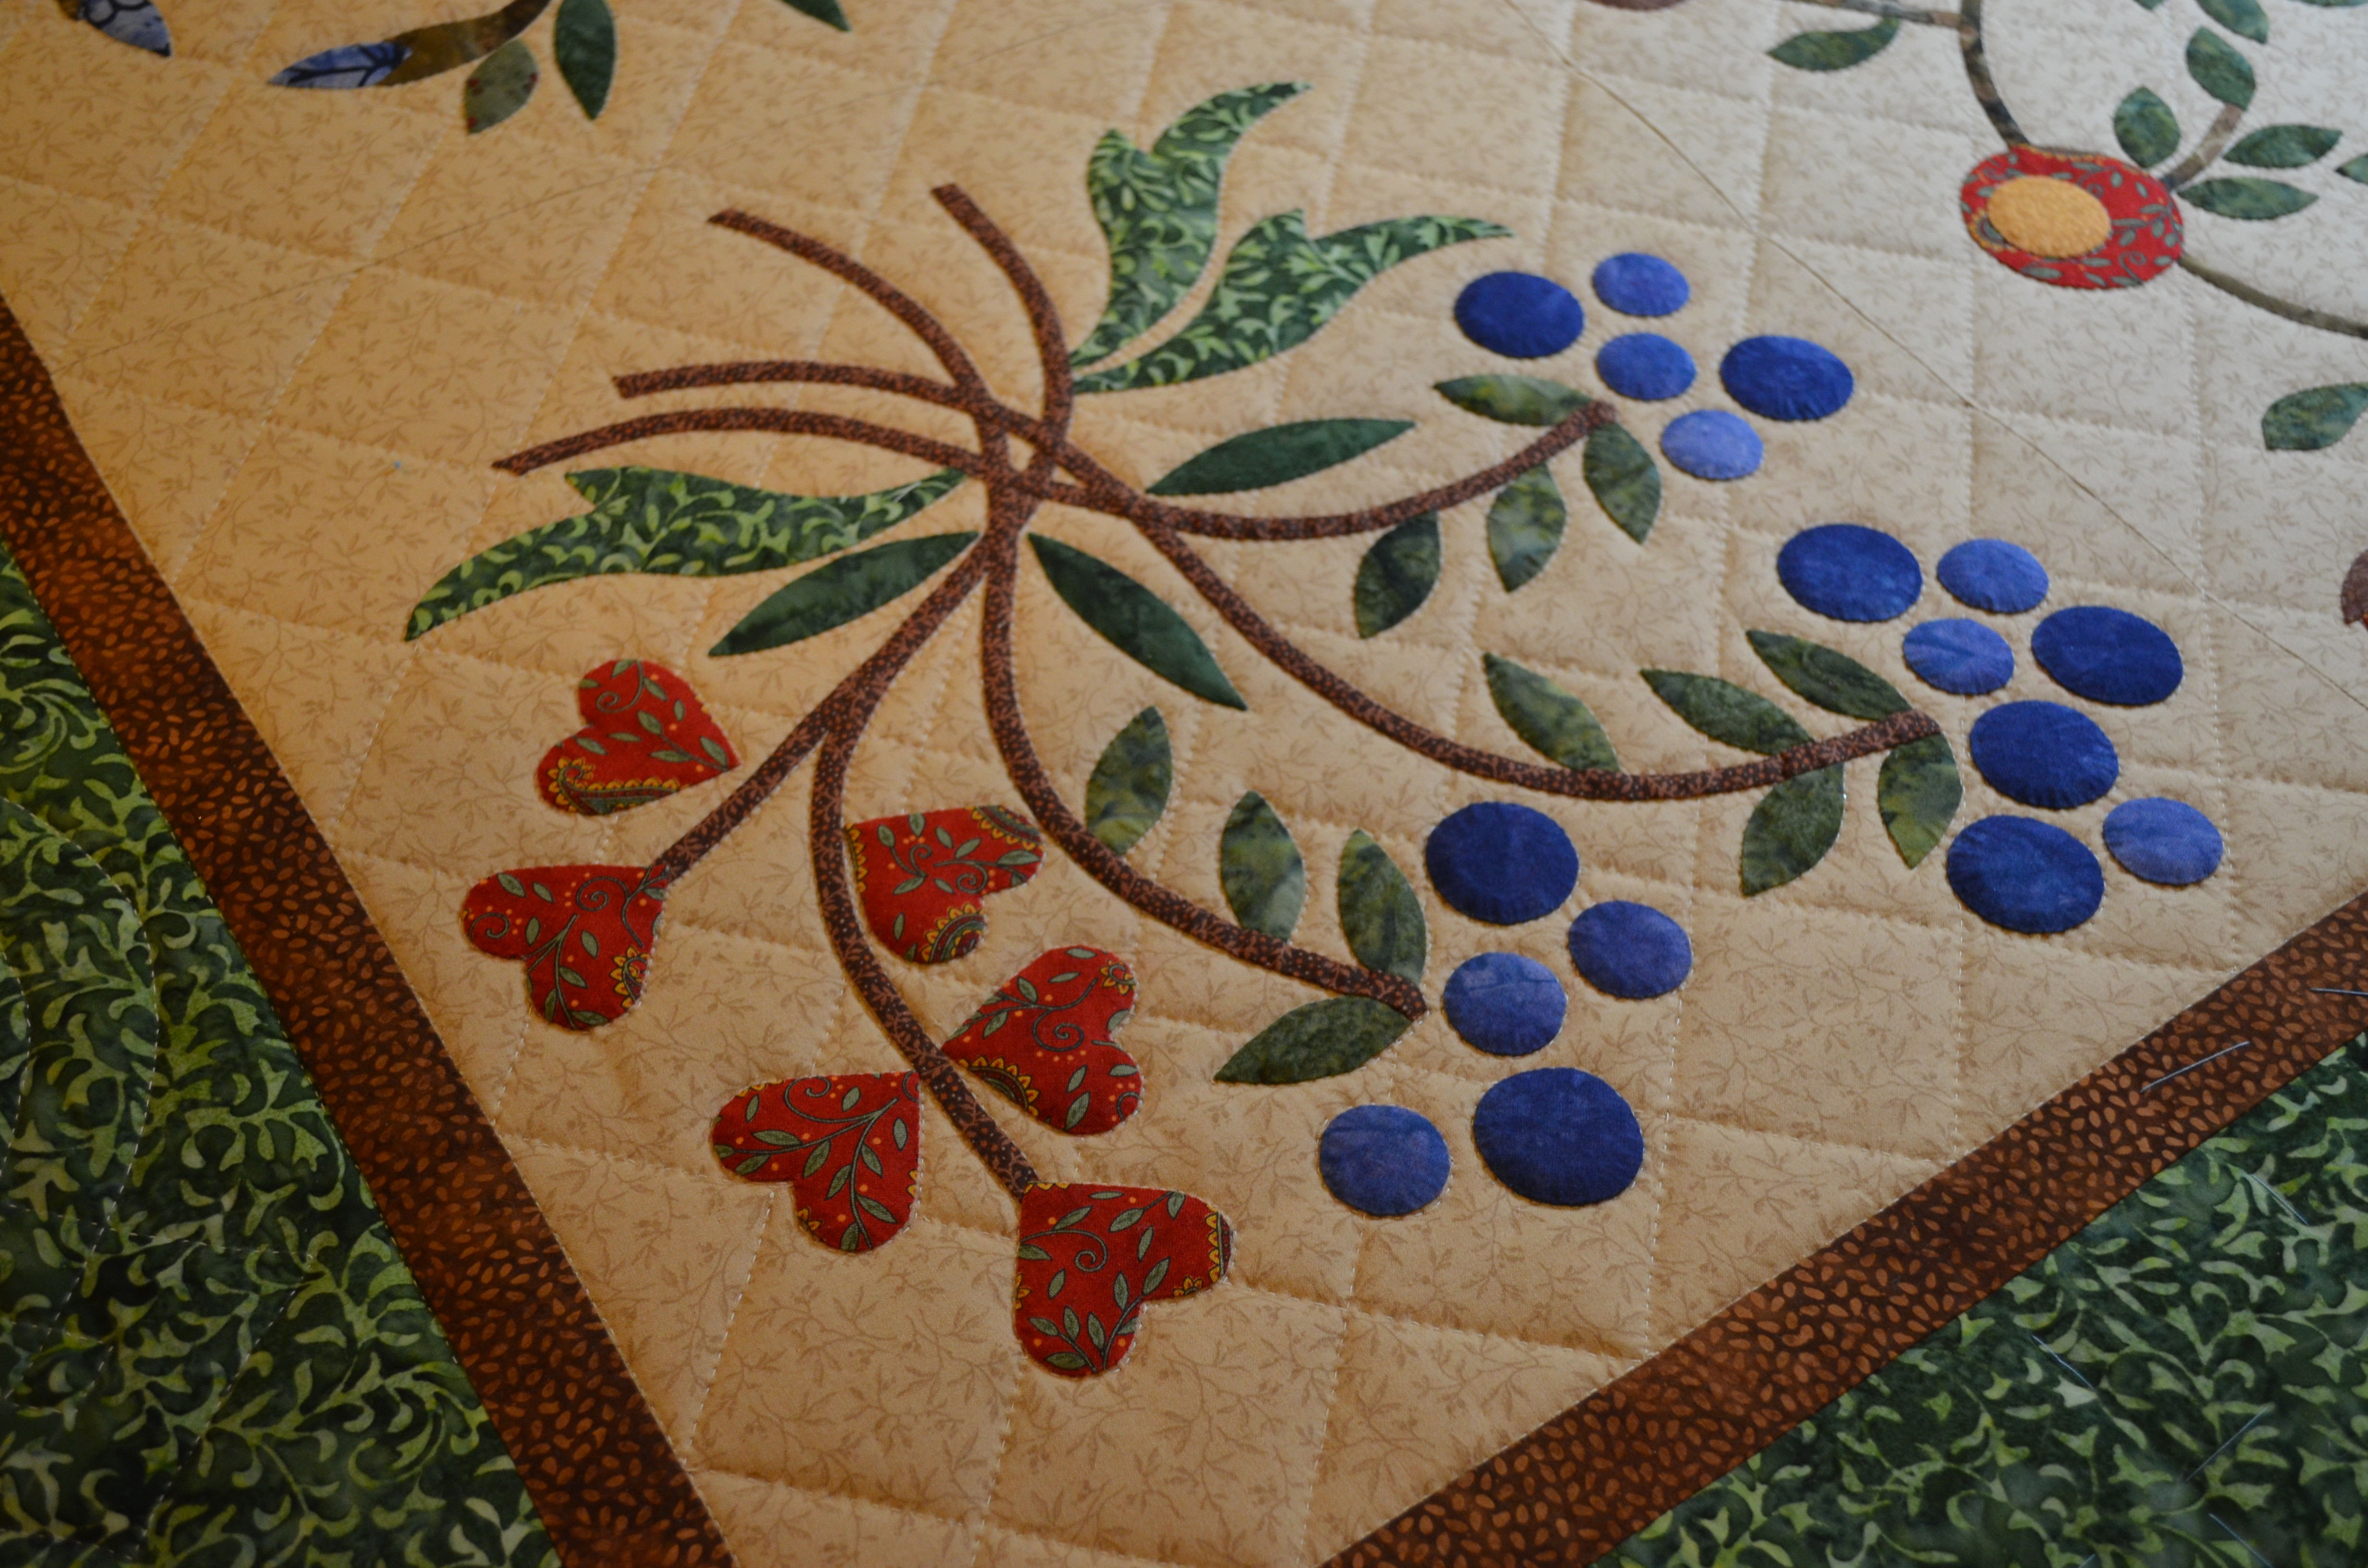 Hand appliqued and hand quilted averyclaire